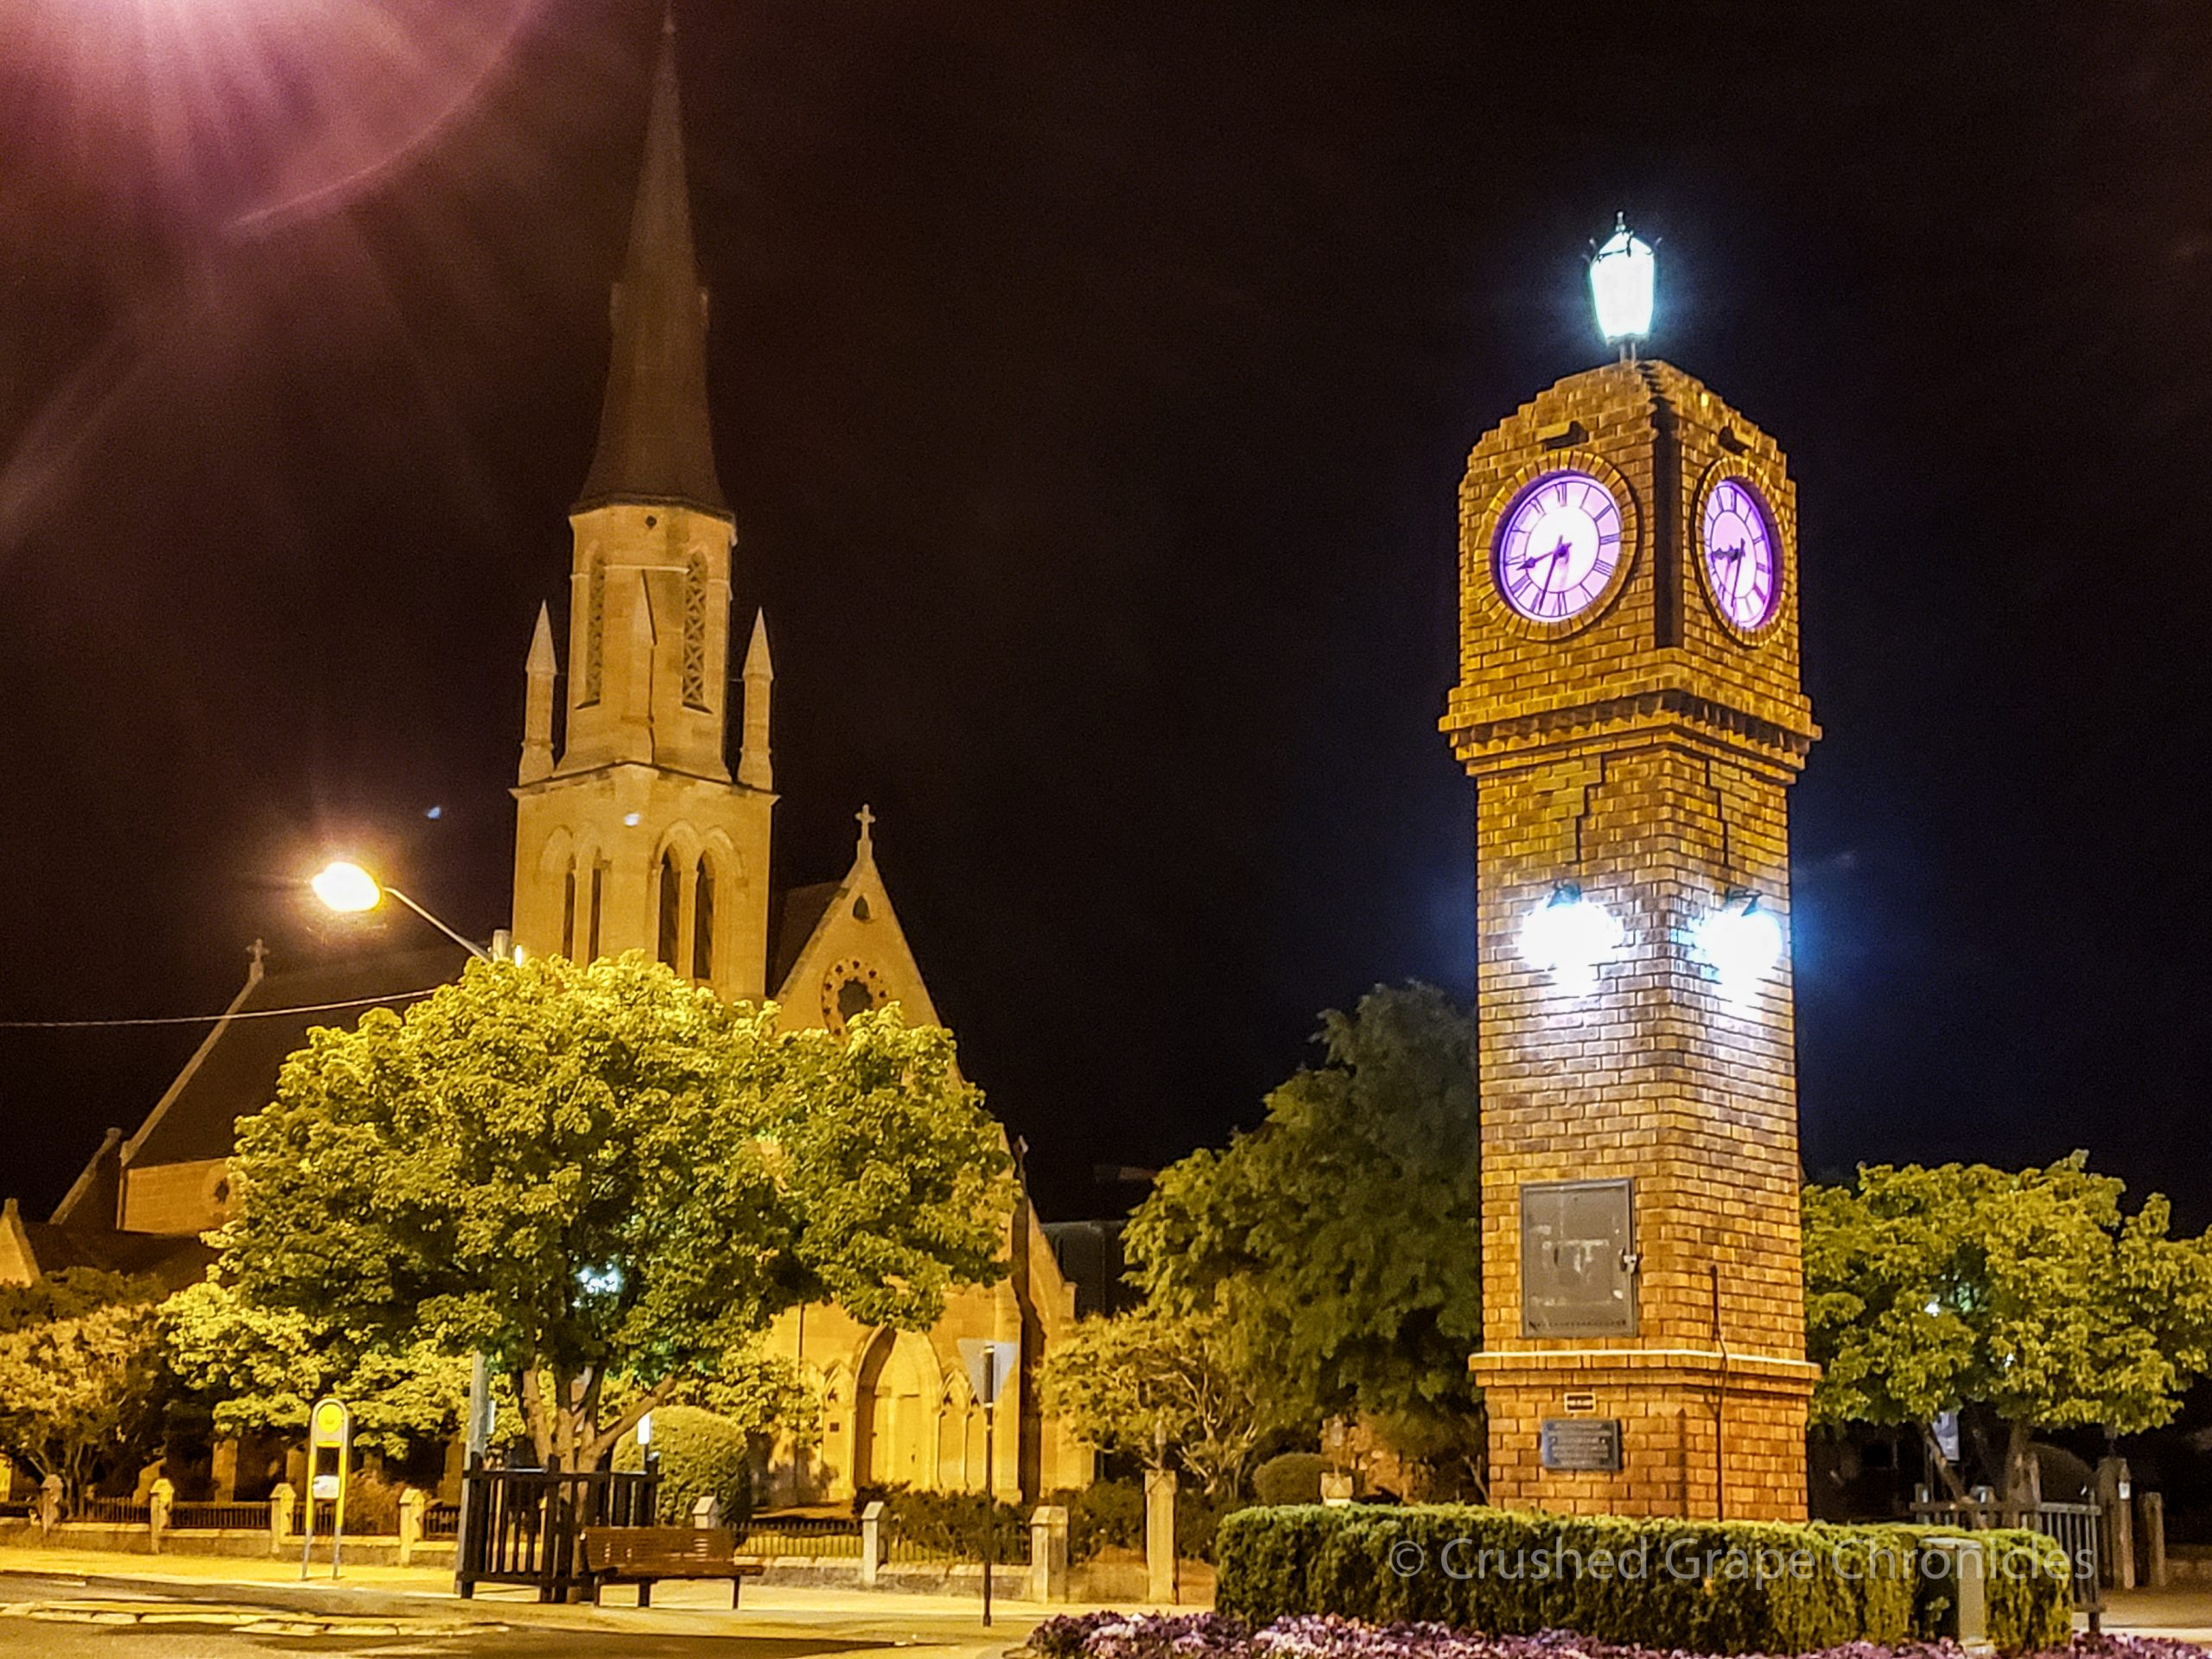 The Mudgee clock tower at night NSW Australia